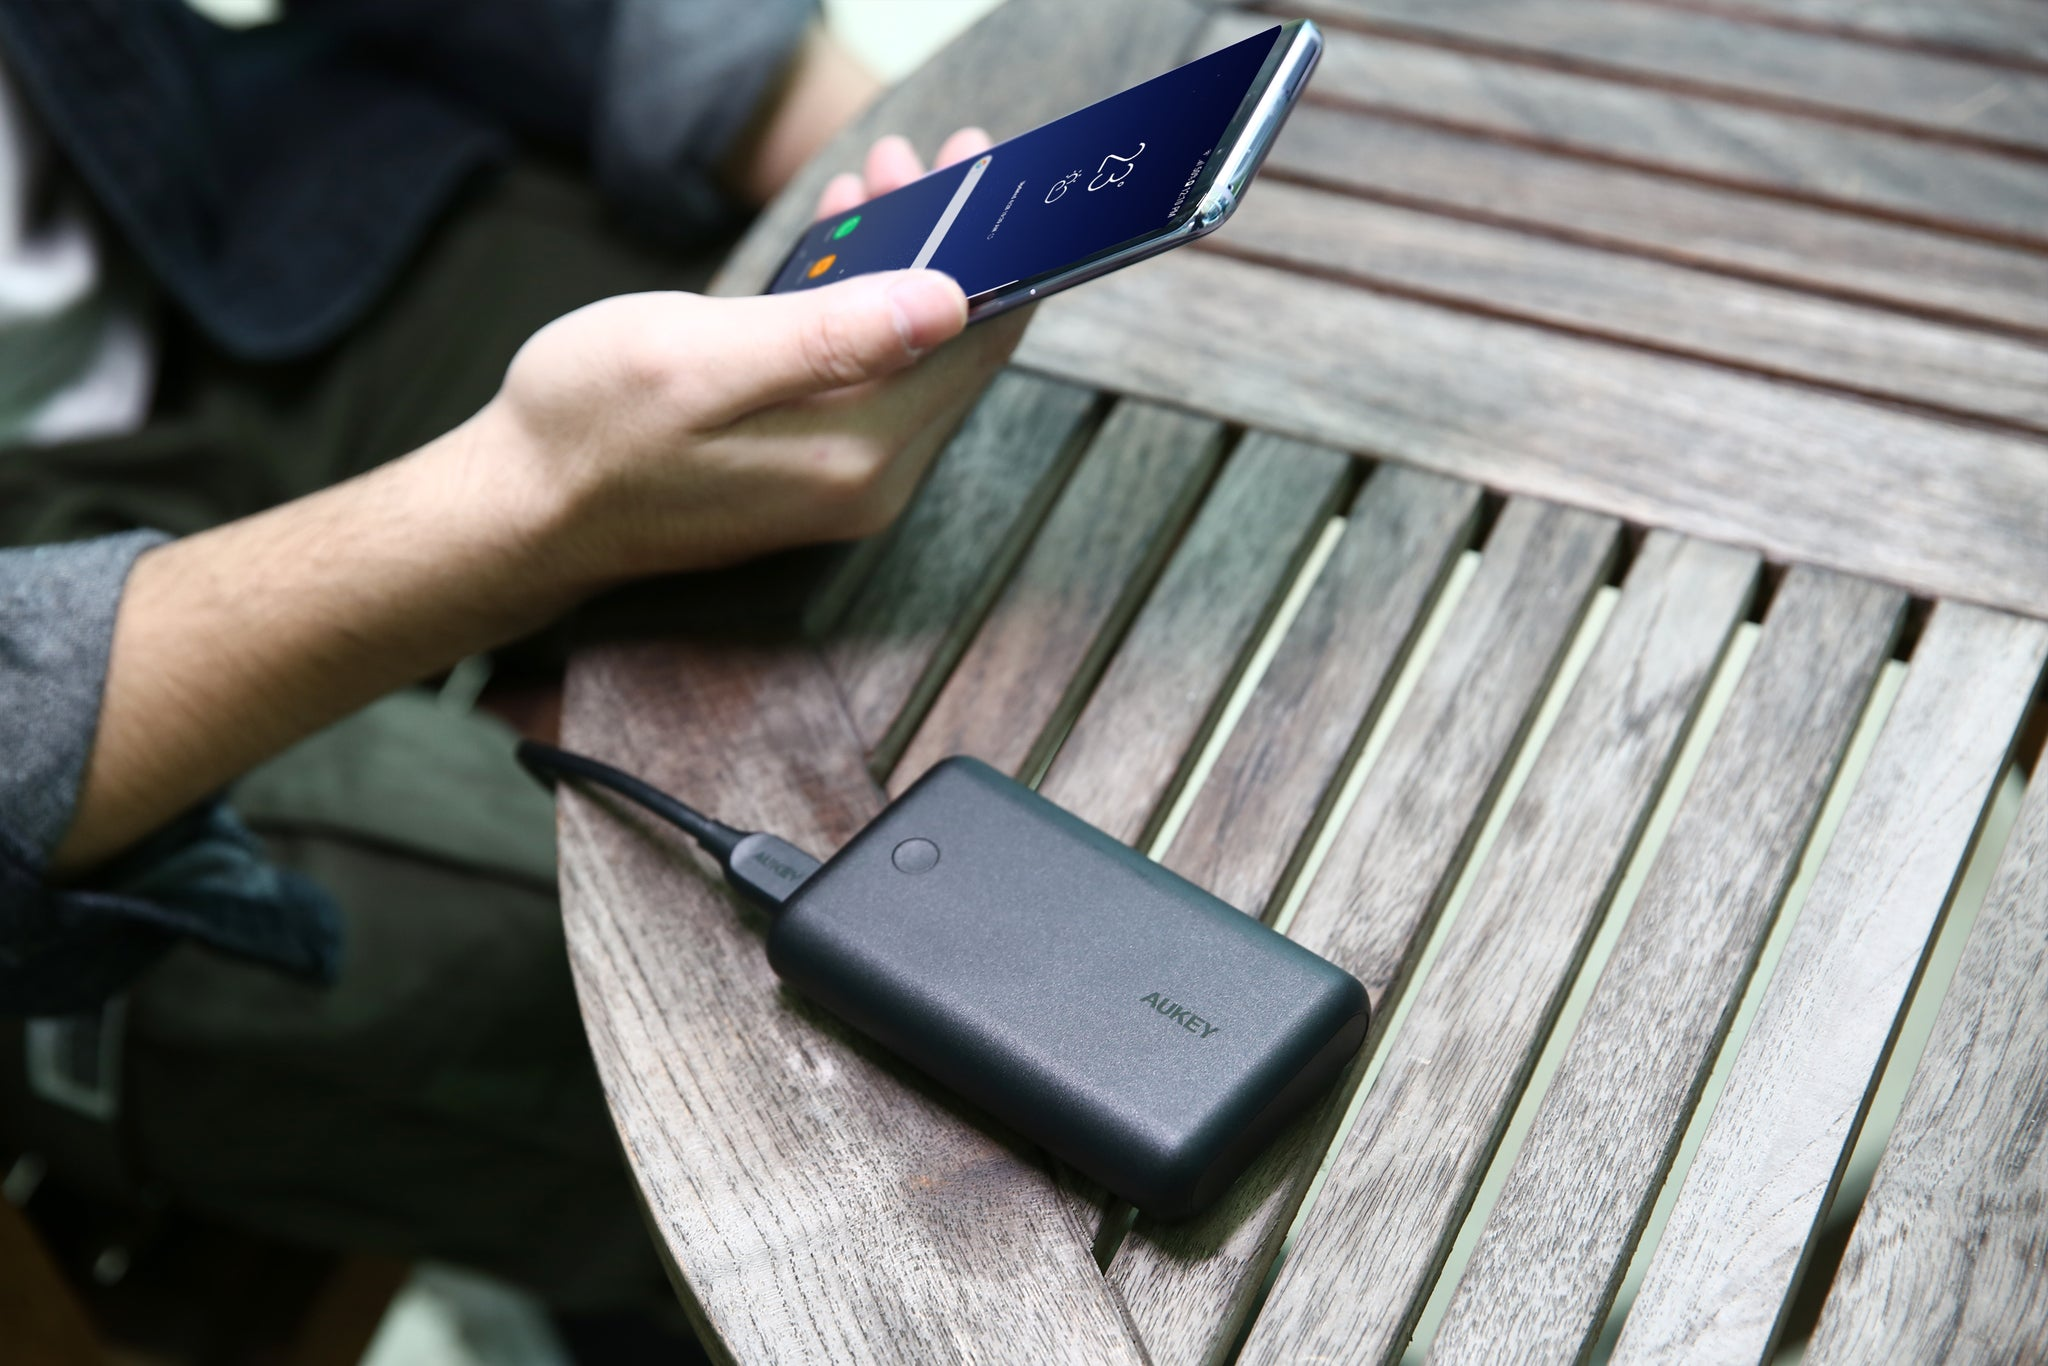 AUKEY PB-XD10 10050mAh USB-C Power Bank